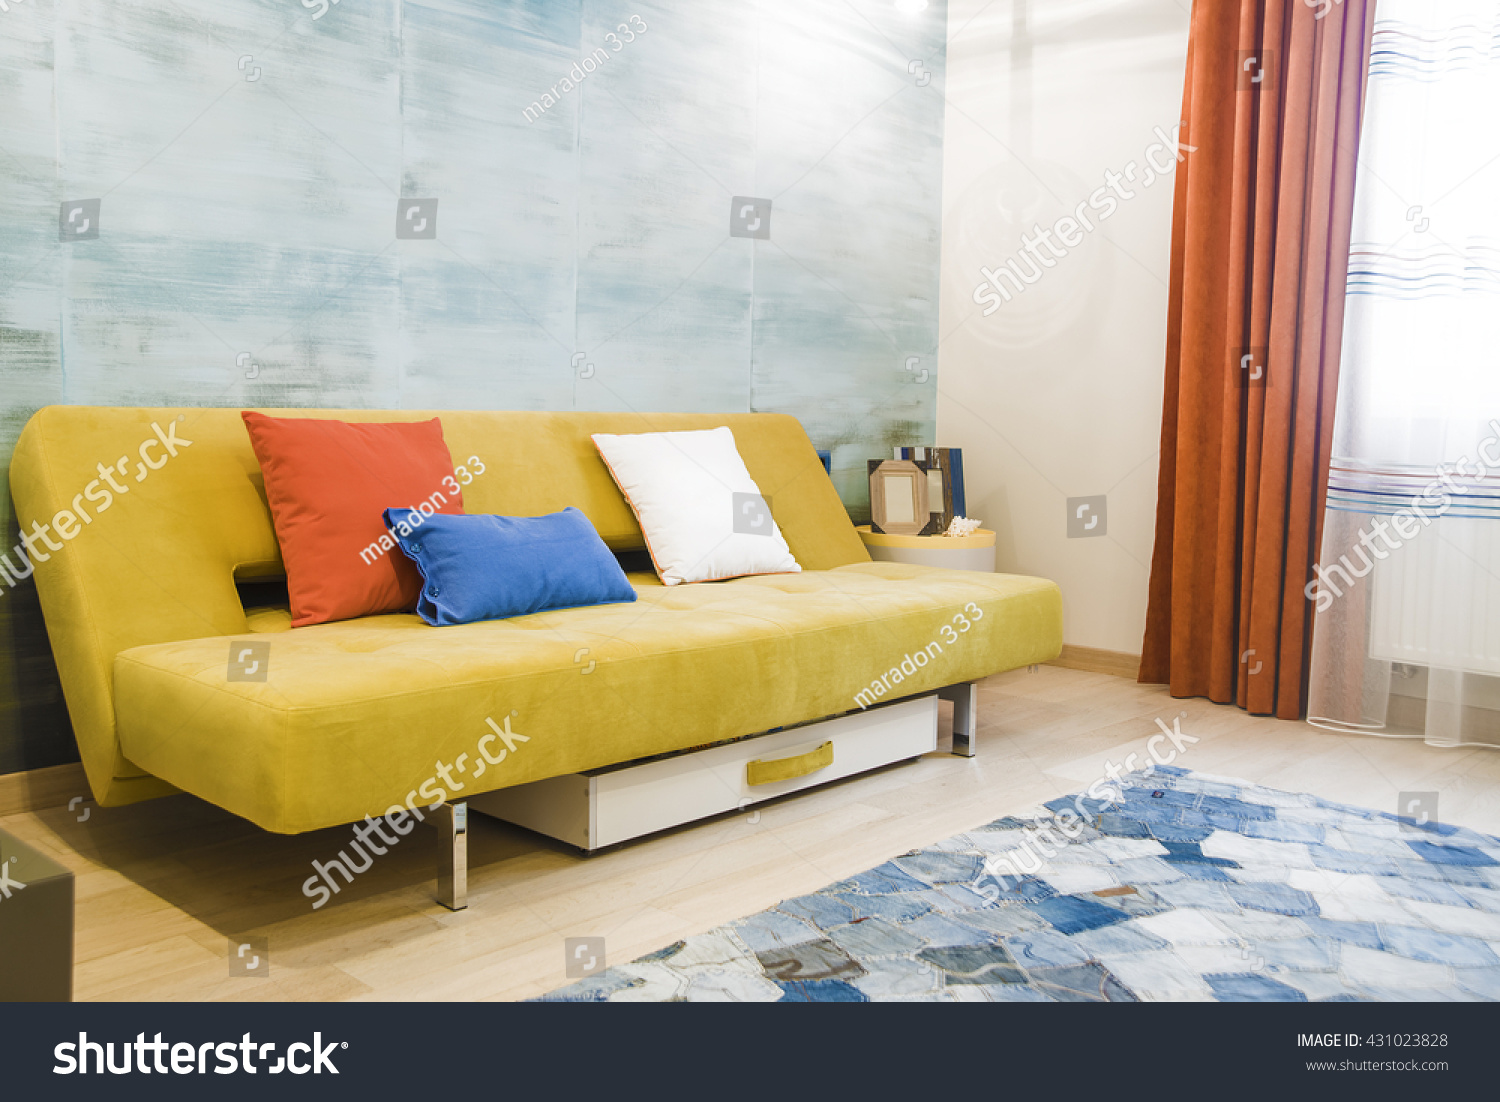 Interior Background Yellow Brown Sofa Colorful Stock Photo (Royalty ...